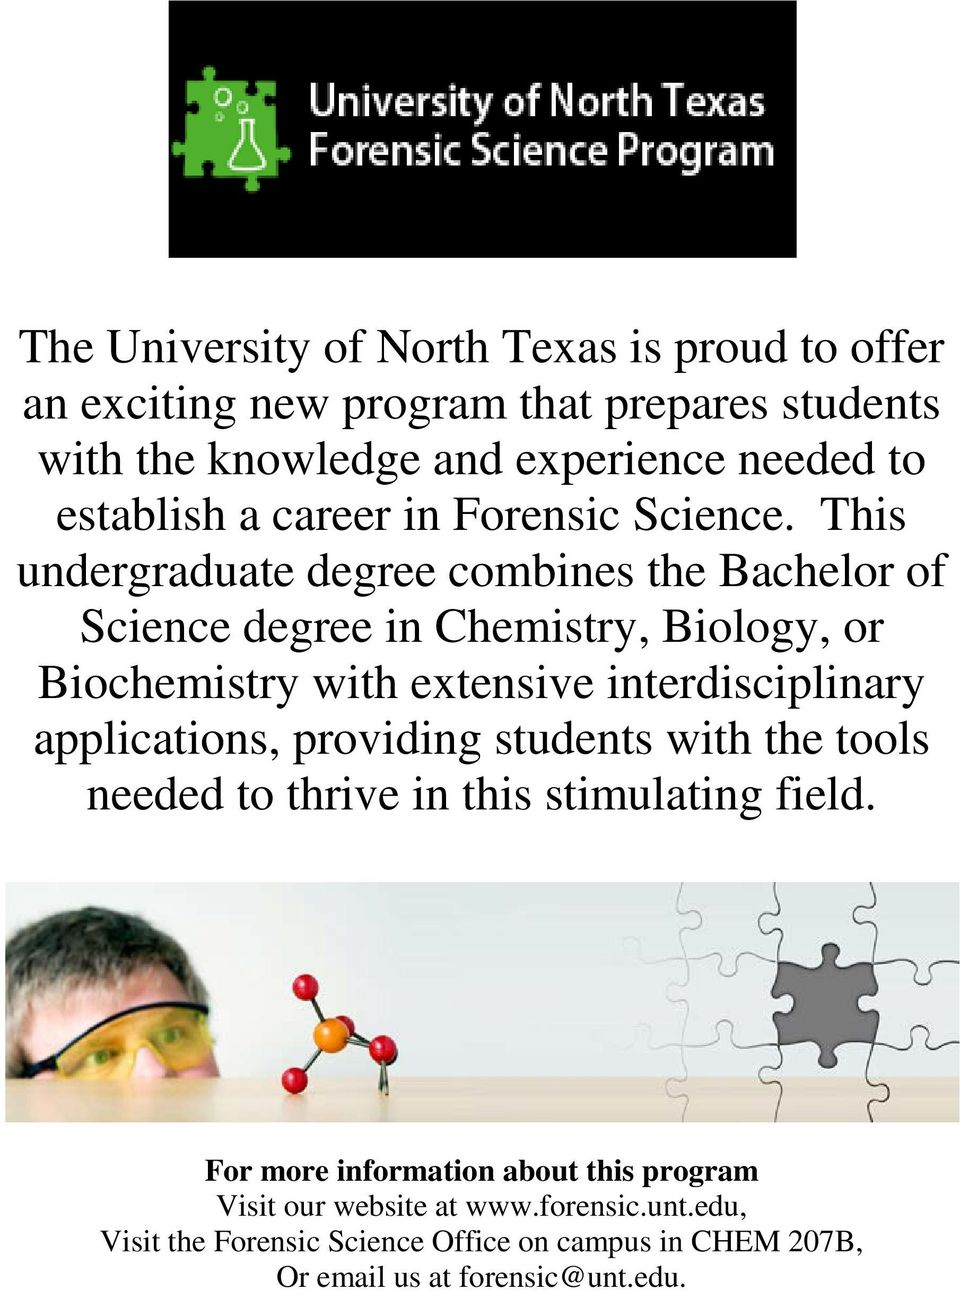 This undergraduate degree combines the Bachelor of Science degree in Chemistry, Biology, or Biochemistry with extensive interdisciplinary